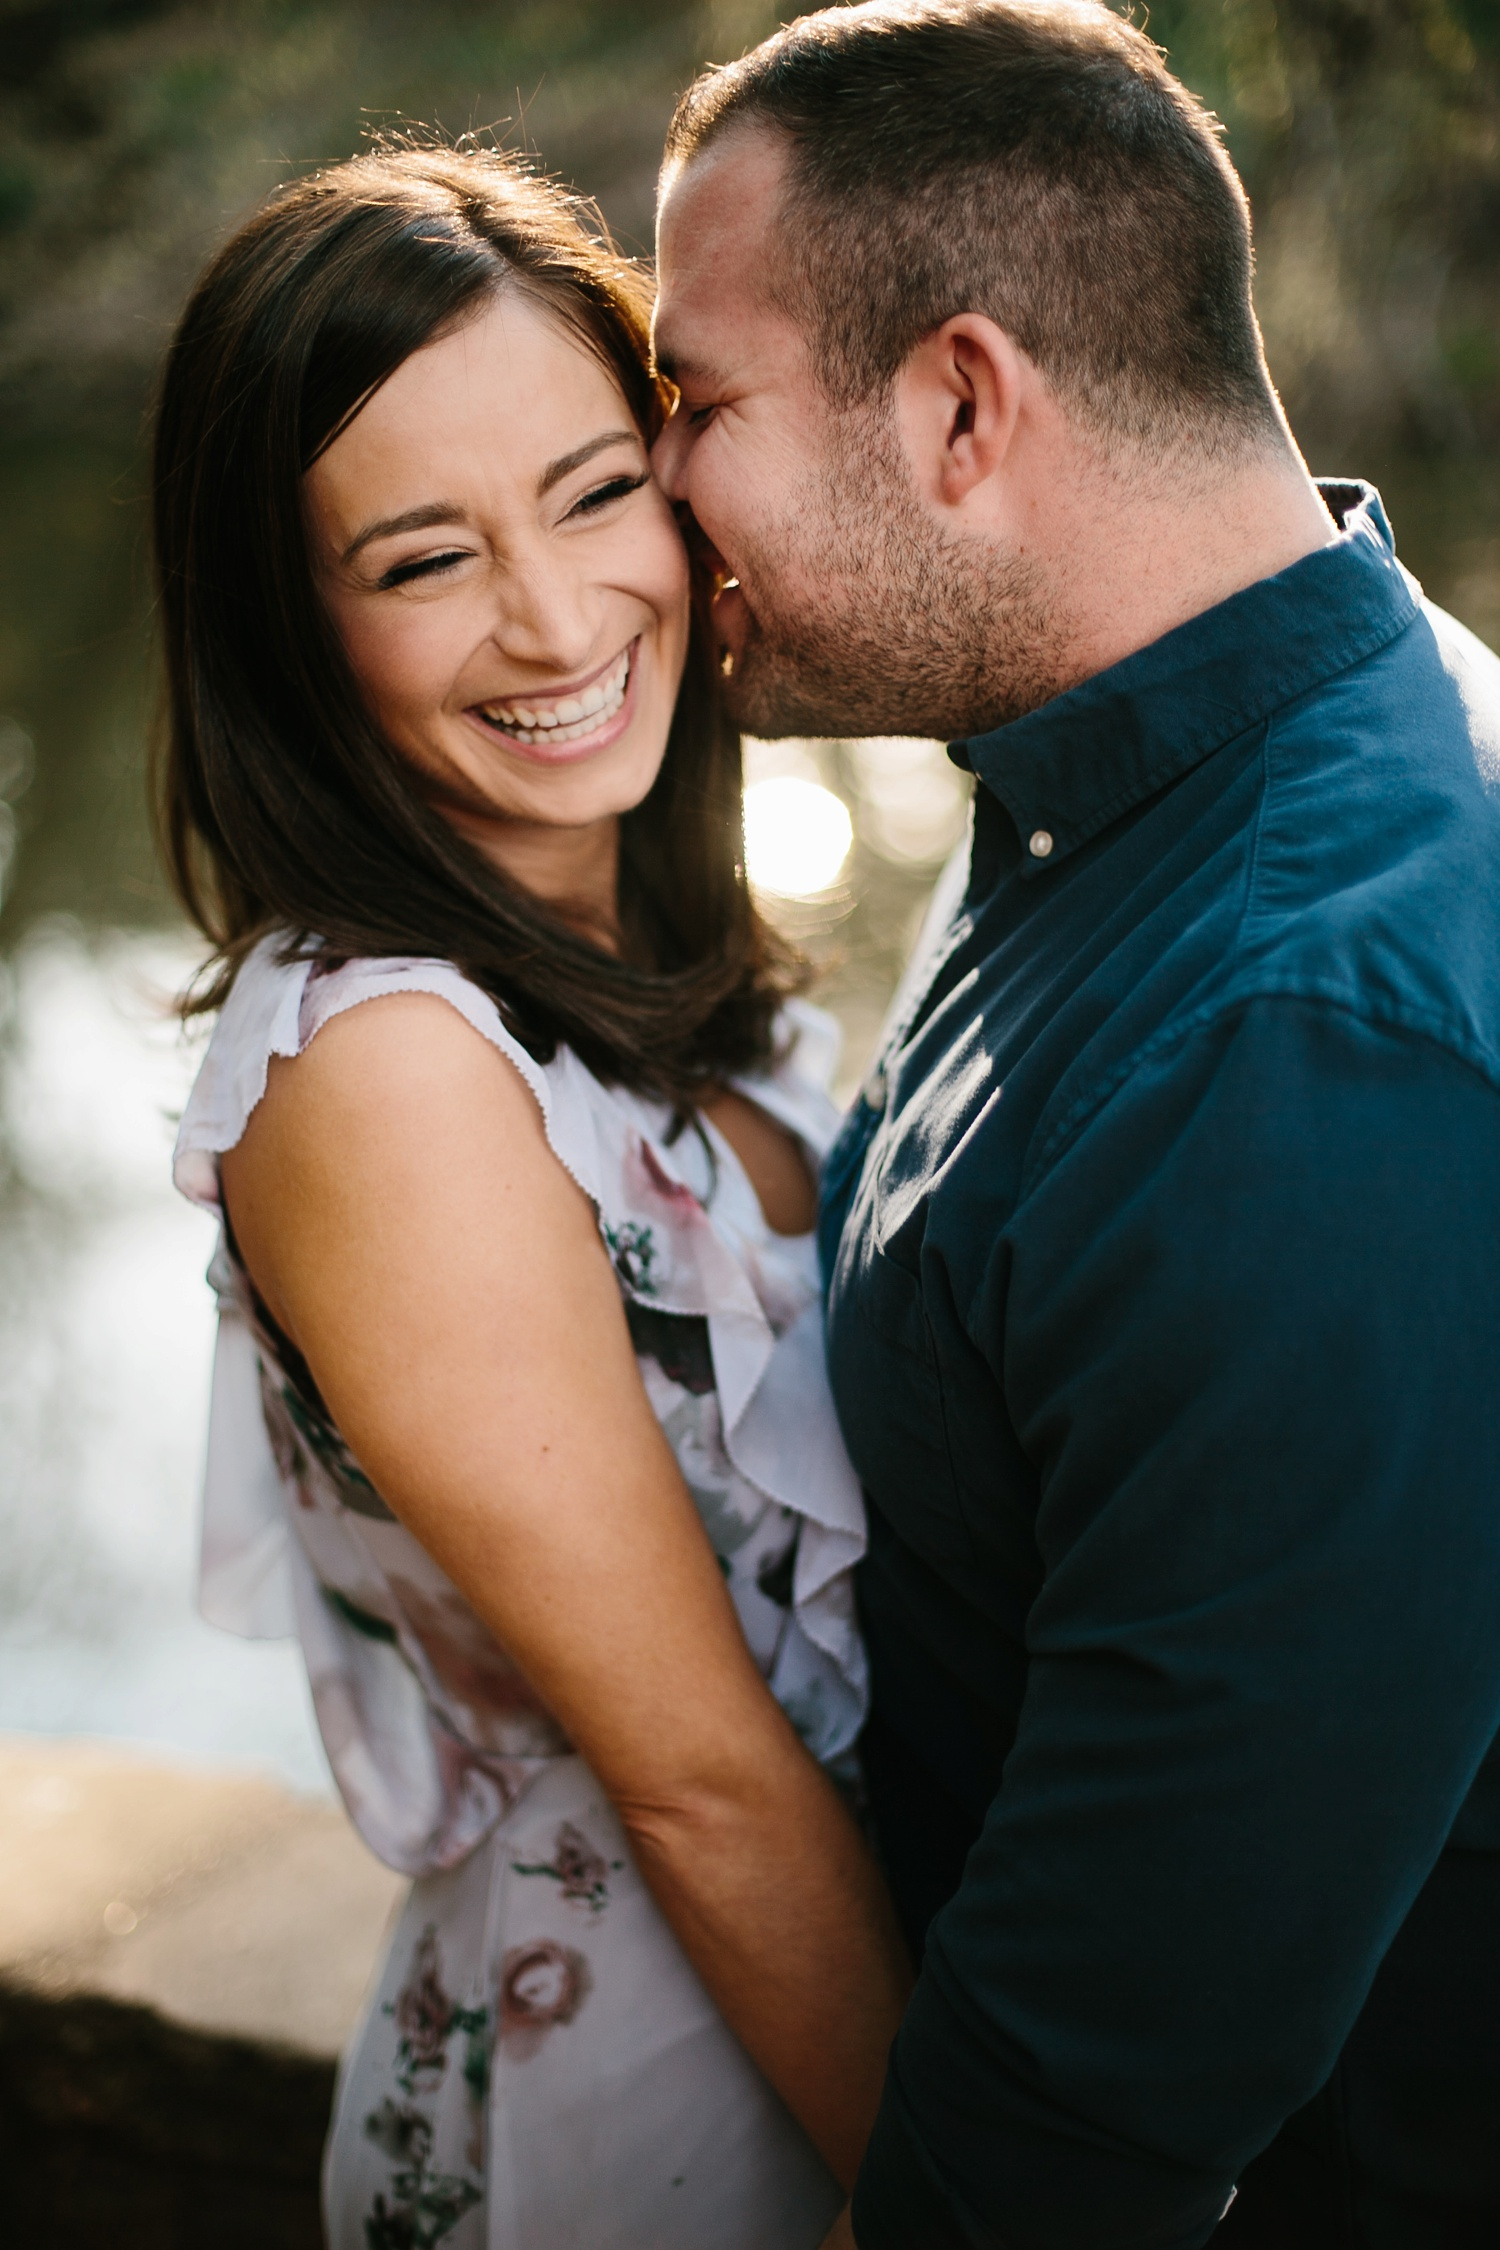 Kadee + Tyler _ a forest and city skyline engagement shoot in Dallas by North Texas Wedding Photographer Rachel Meagan Photography_15